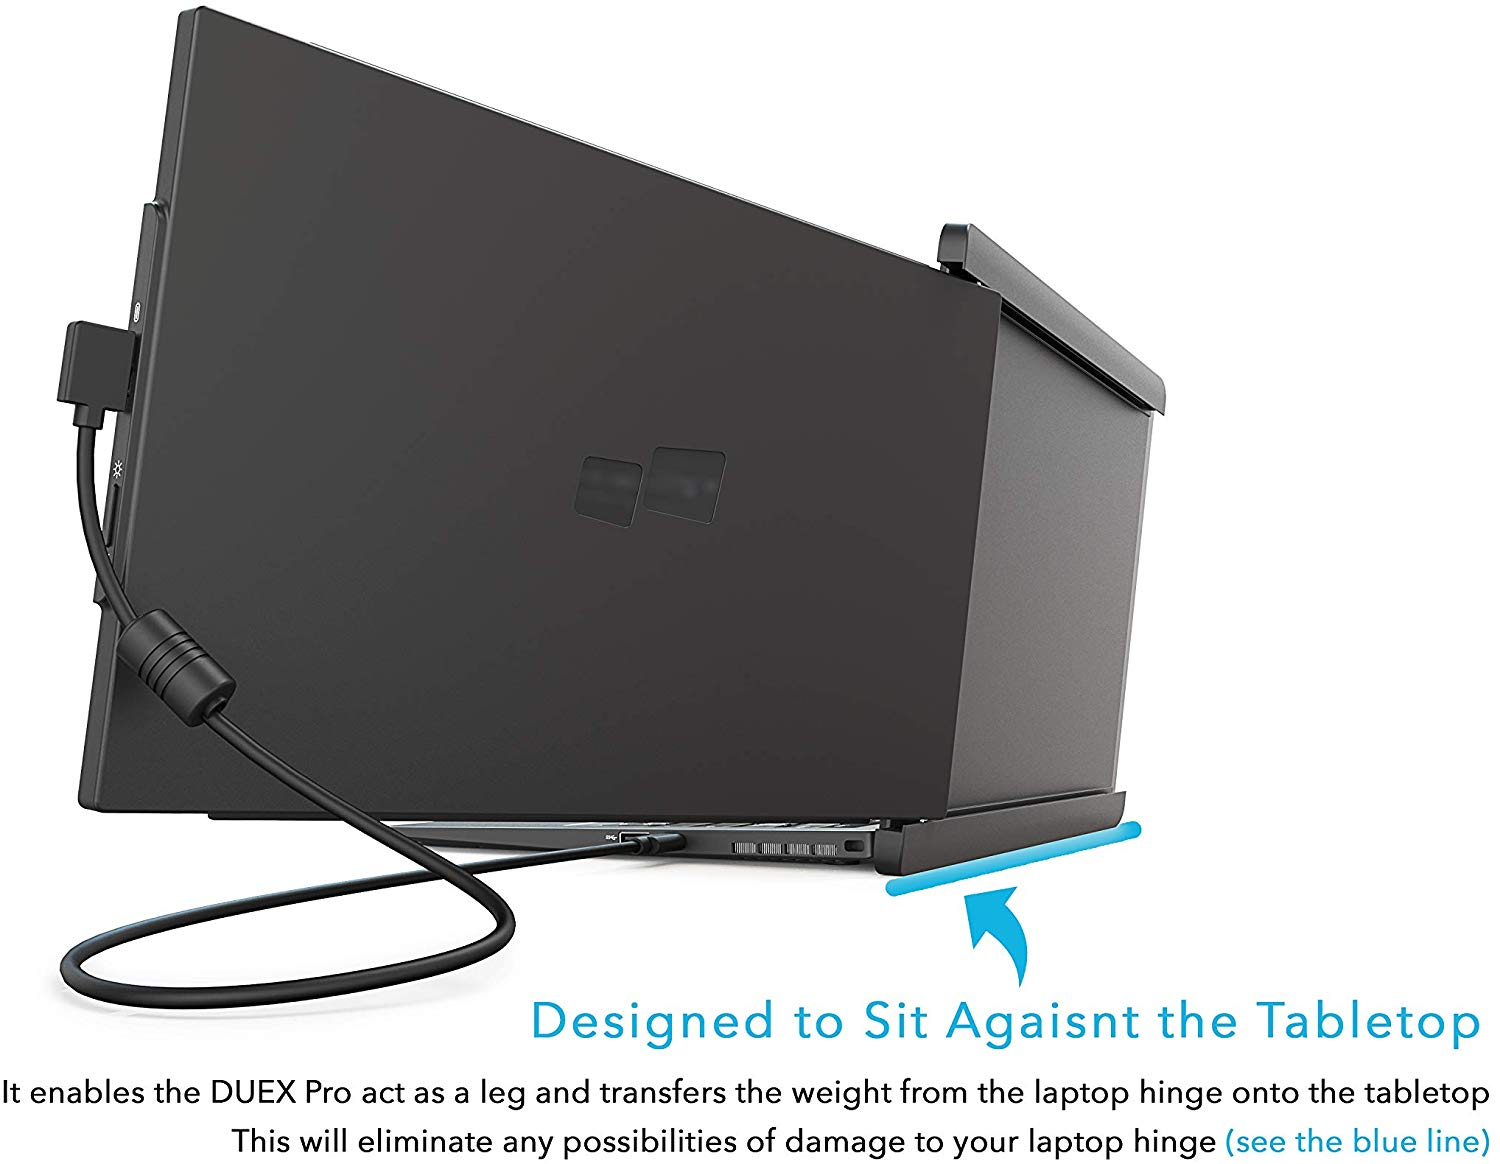 Image of an attached Extendable Extra Dual Laptop Screen on a laptop